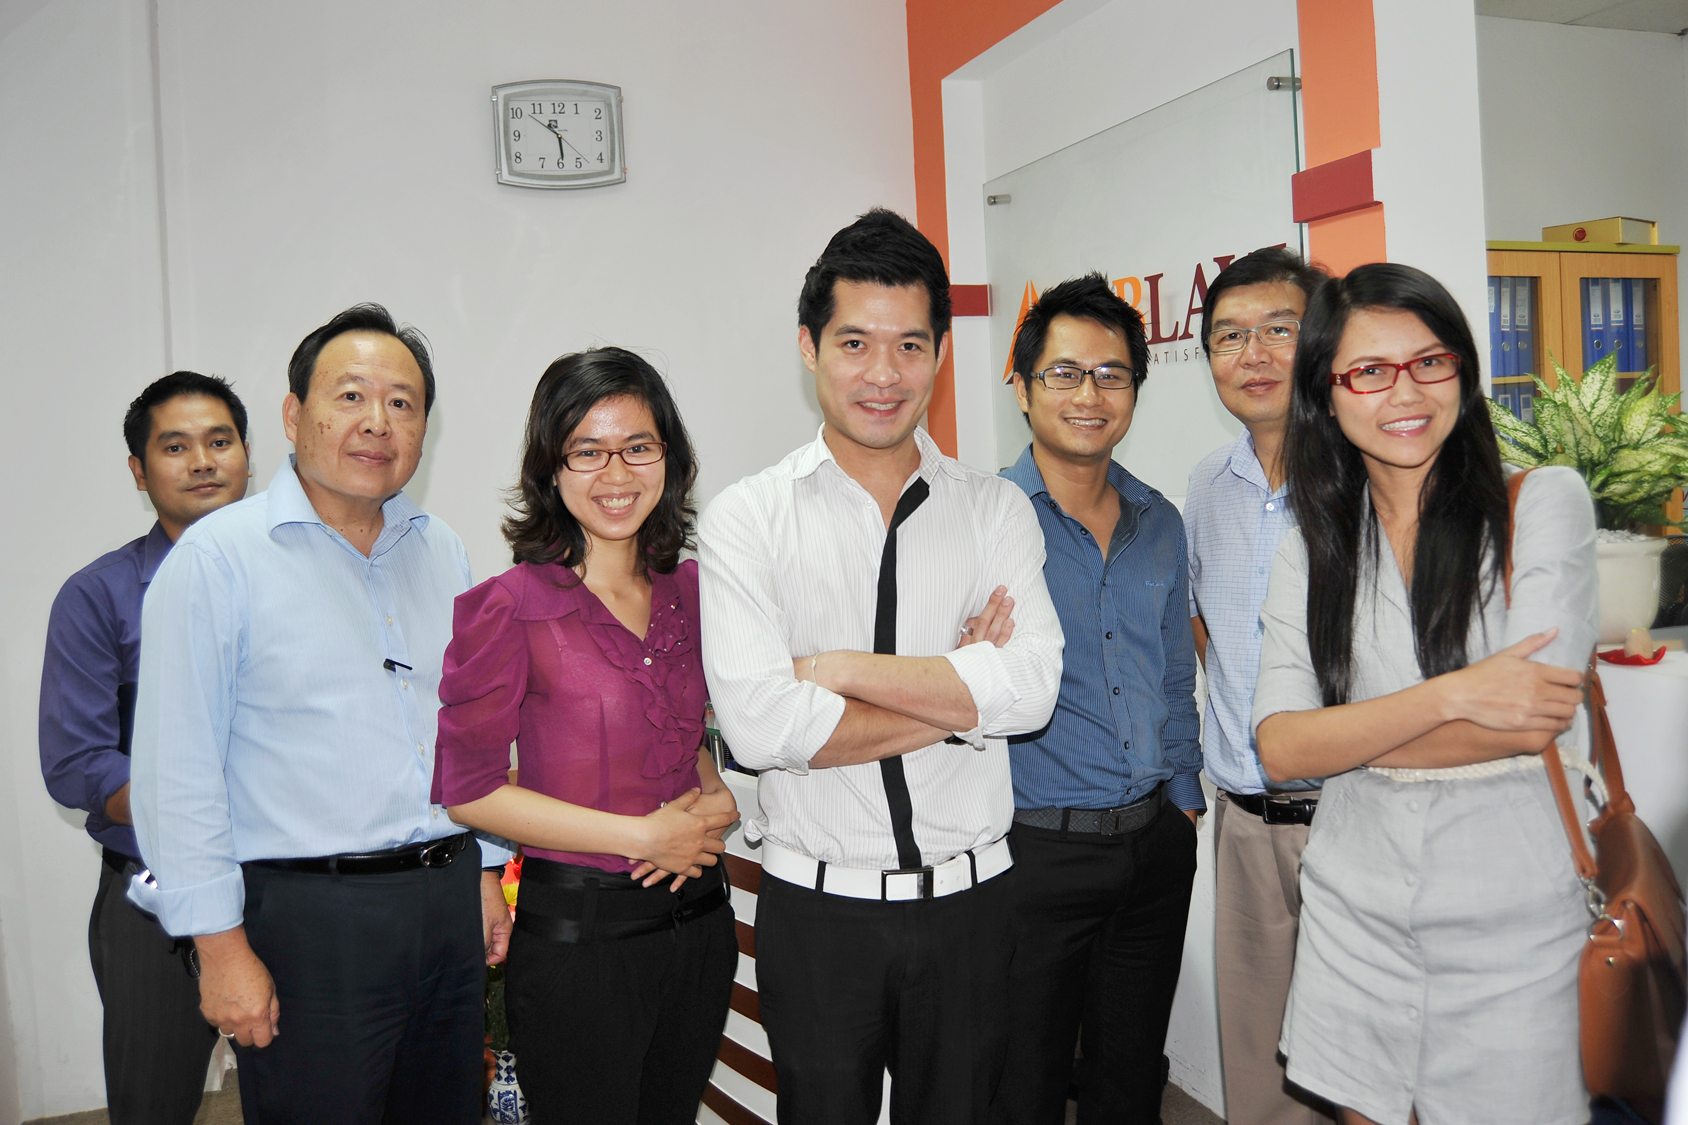 Take picture with Thai Client